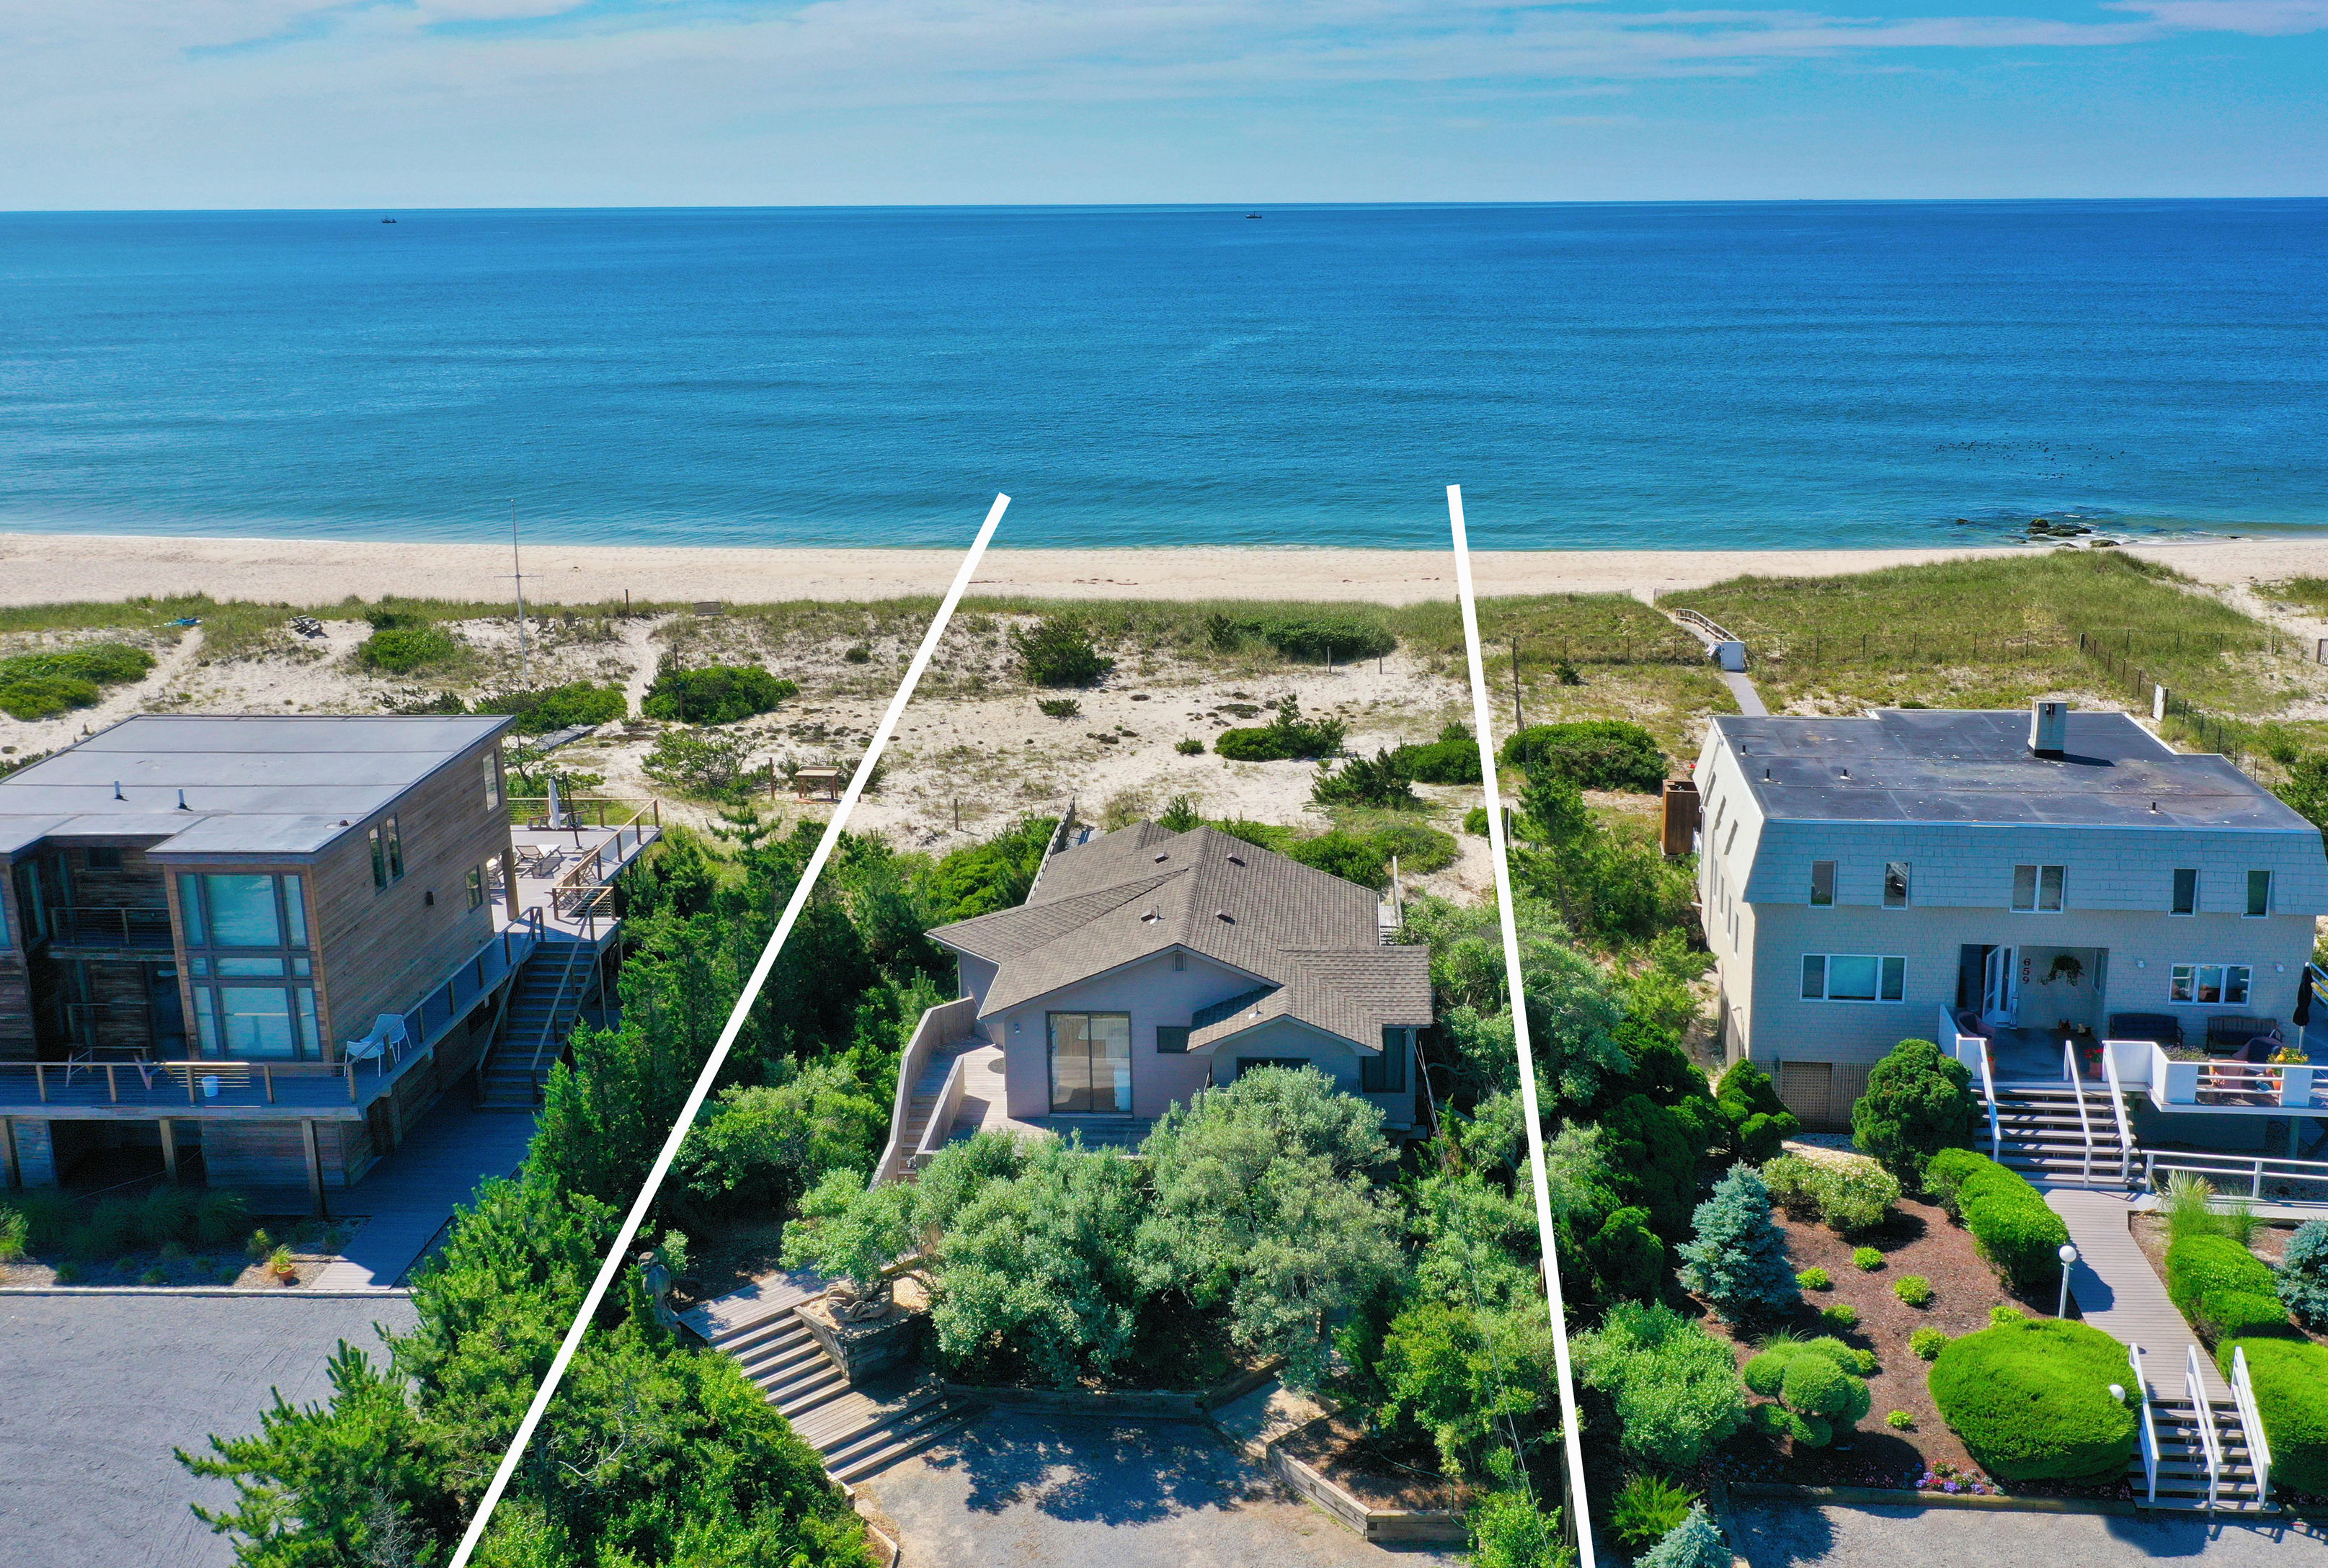 657 Dune Rd - Westhampton South, New York